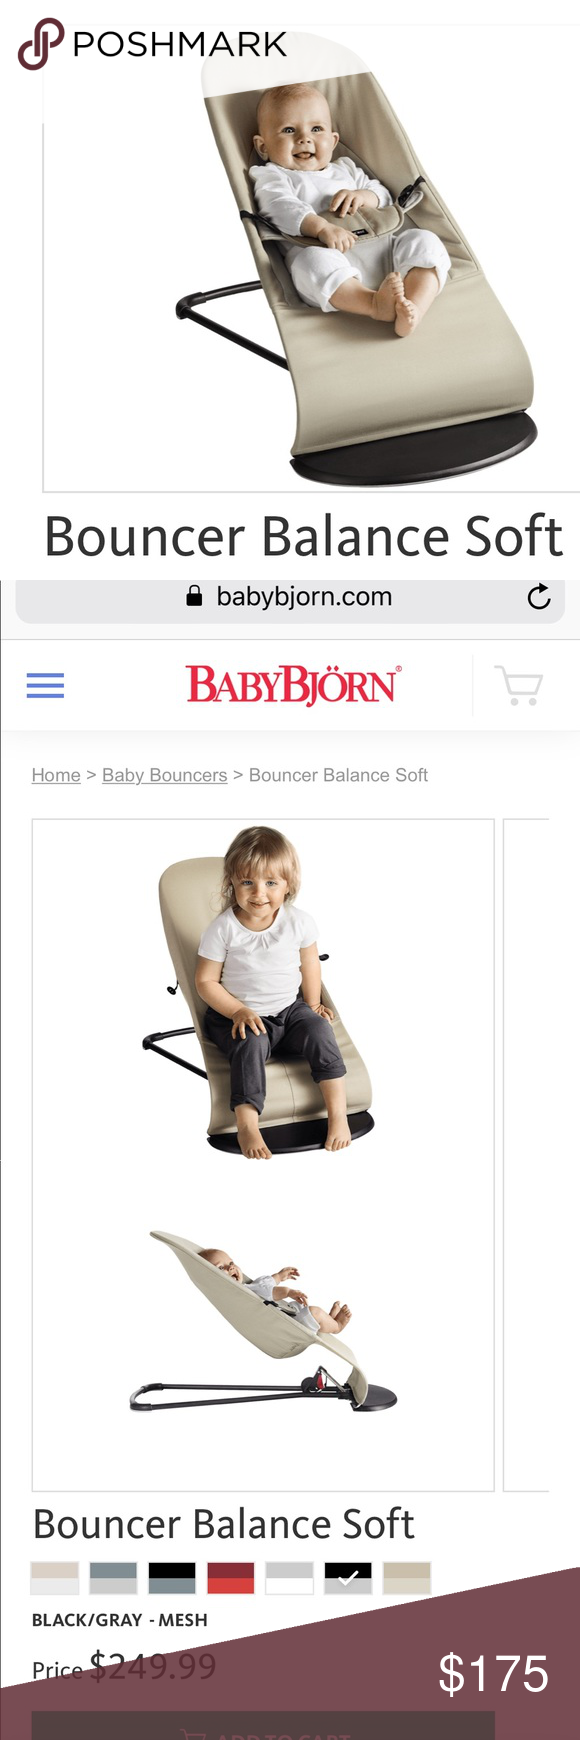 Baby Bjorn Bouncer Balance Soft With Images Baby Bjorn Bouncer Baby Bjorn Baby Bouncer